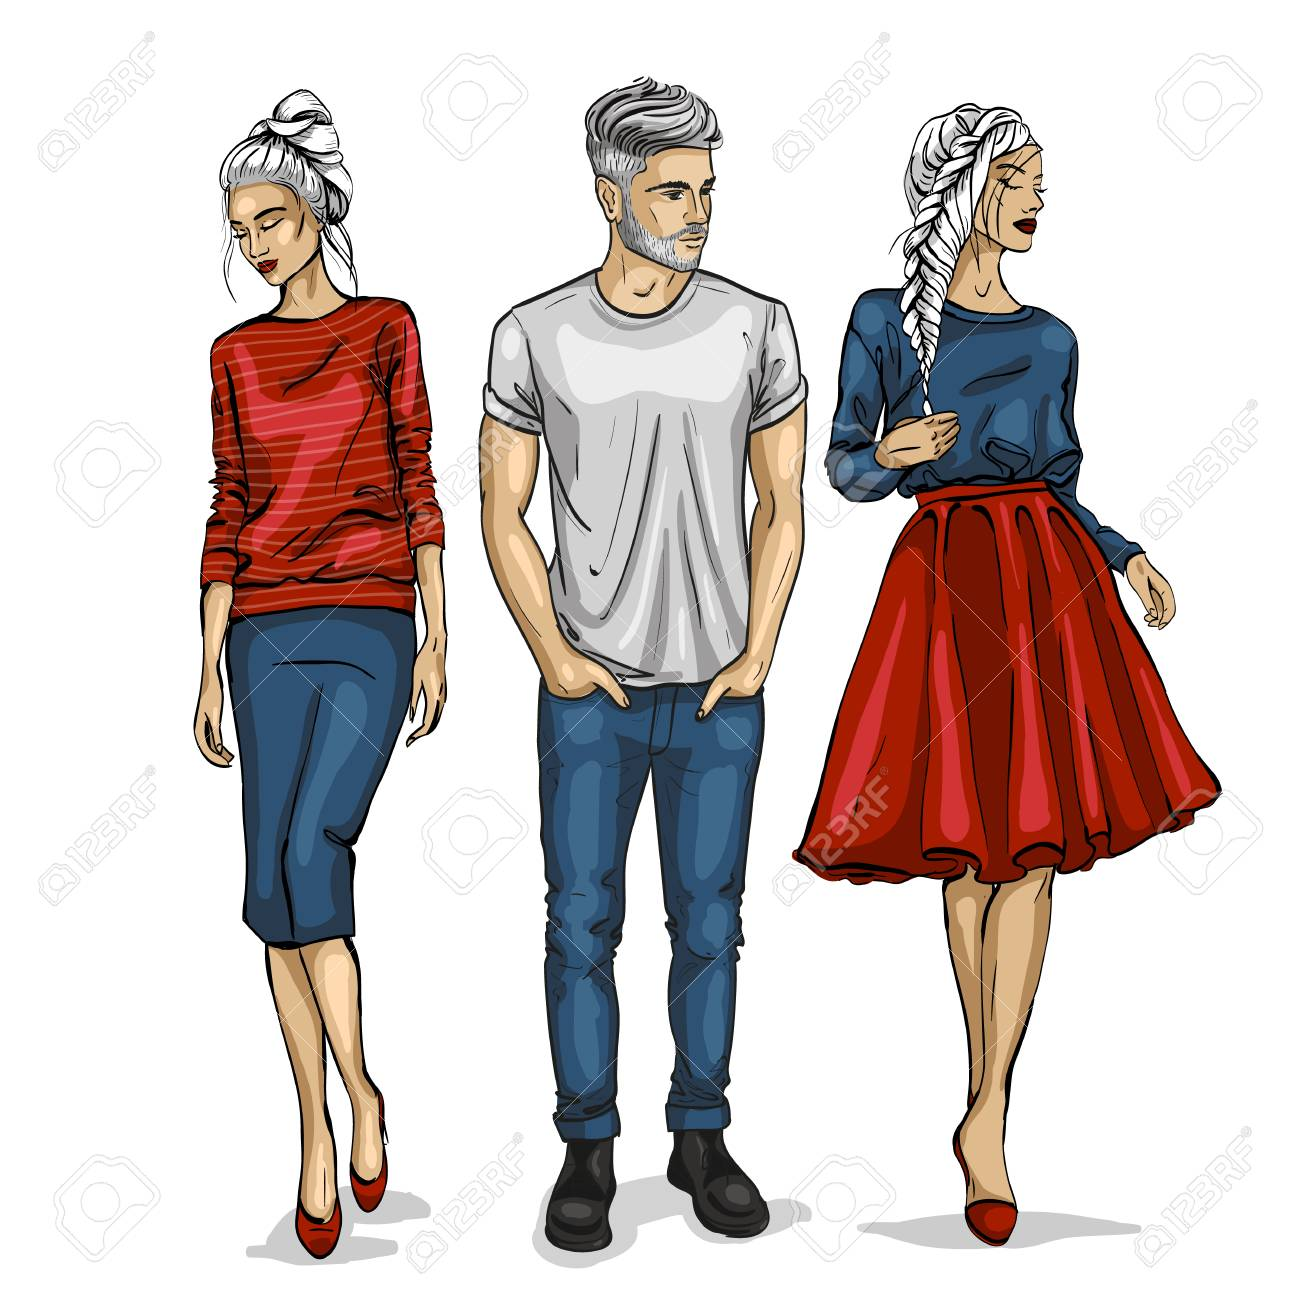 Male and female fashion models icon. - 91755064